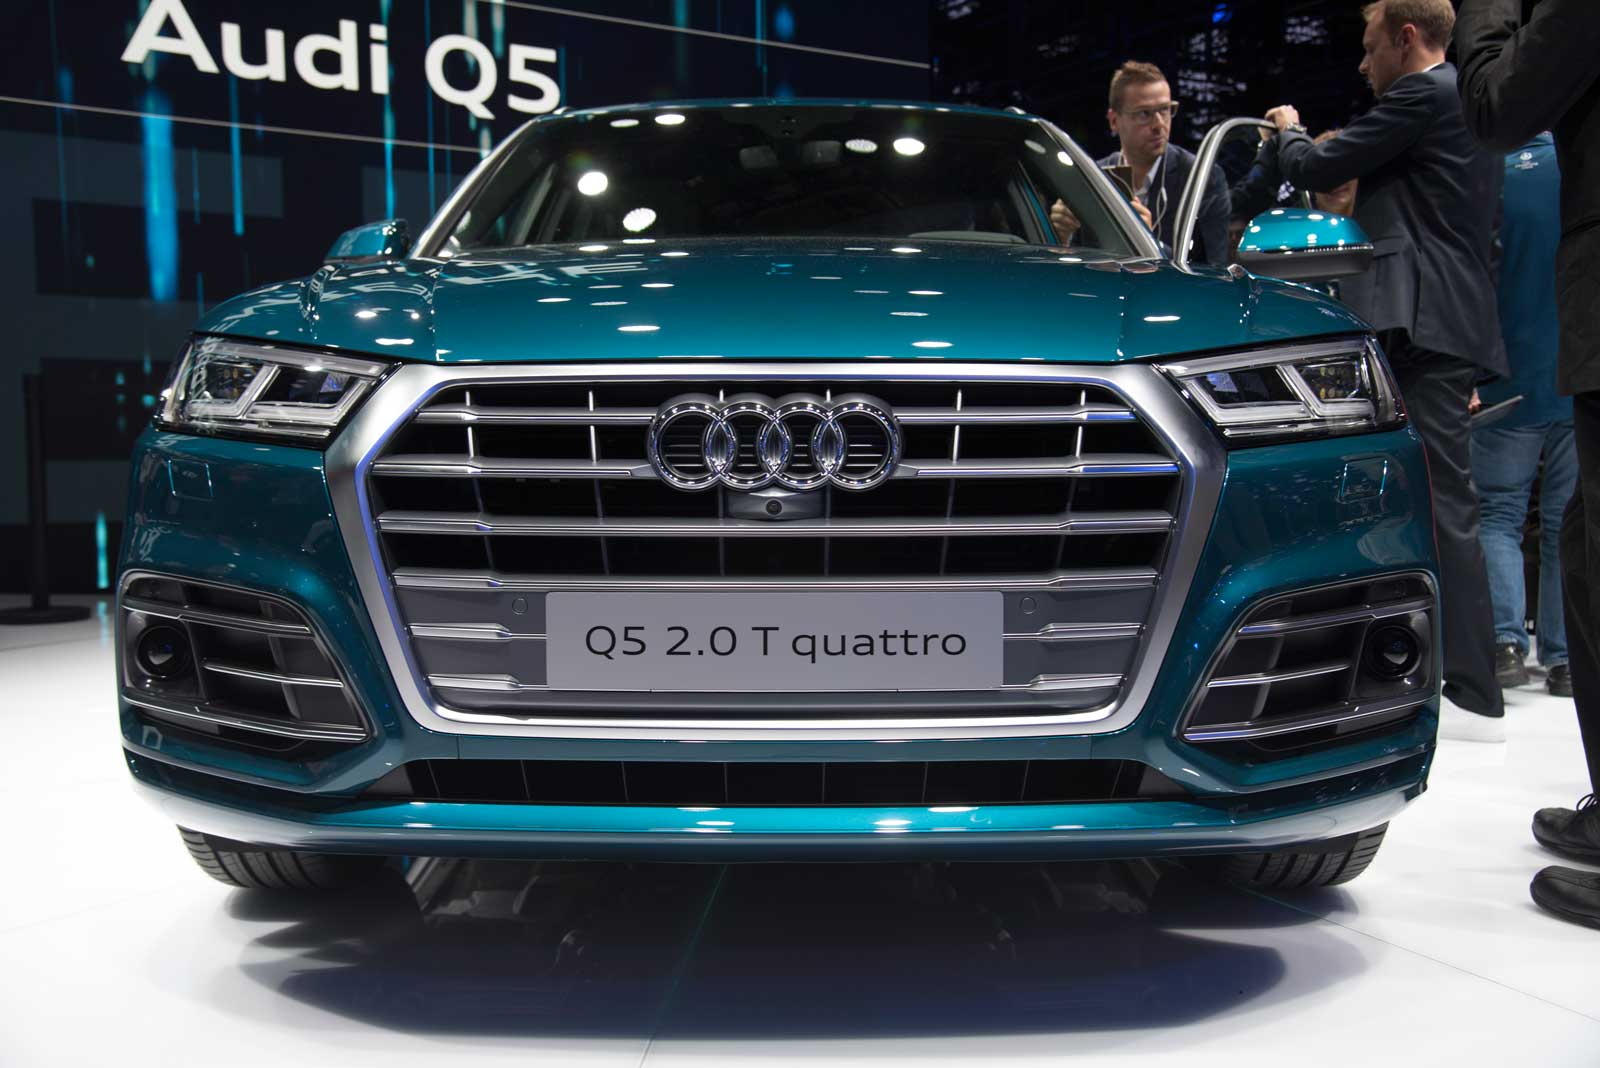 2017 Audi Q5 Larger, Lighter and More Luxurious